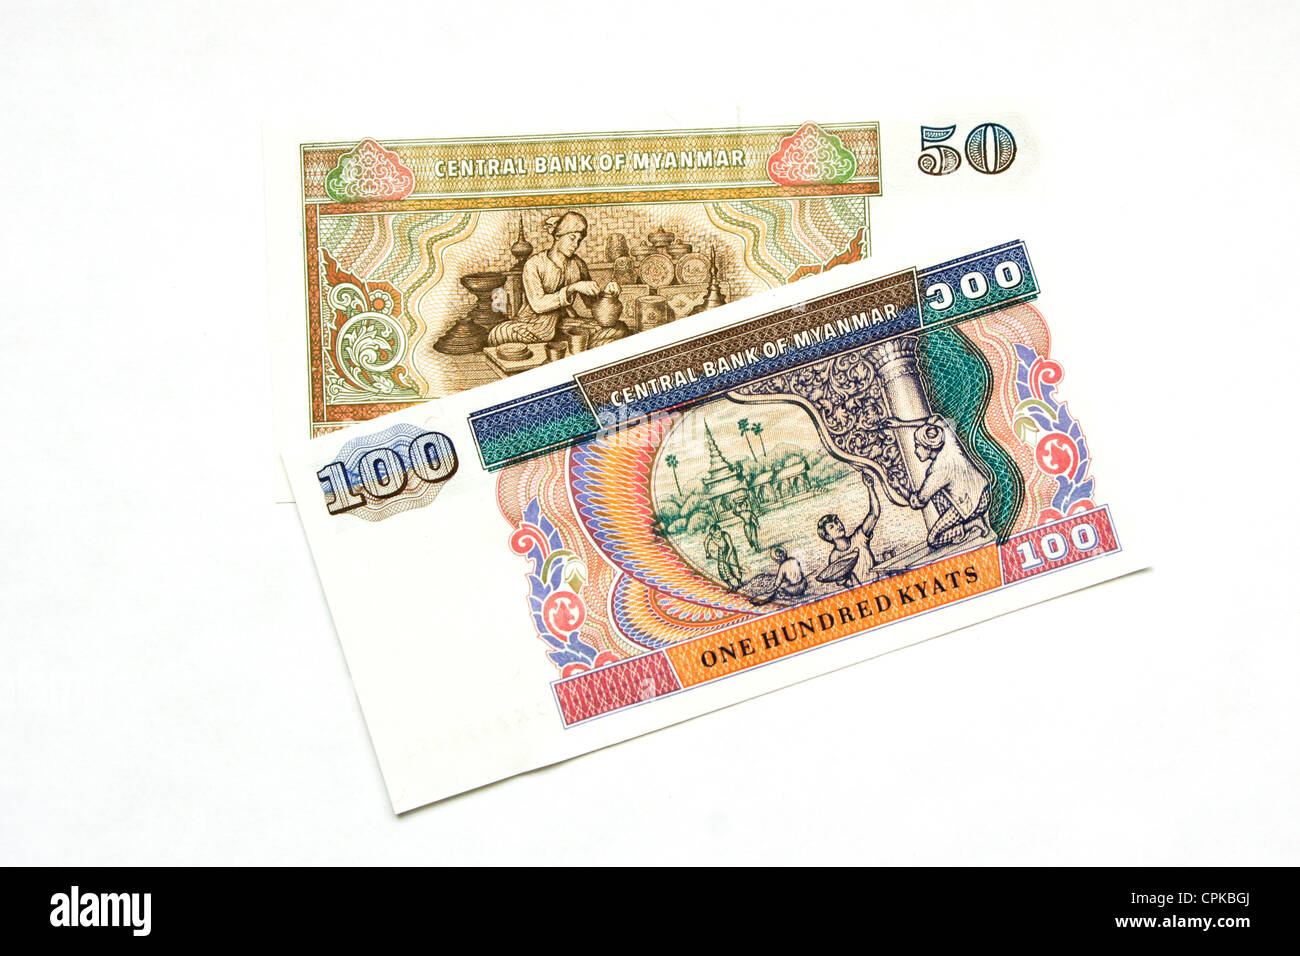 Currency of Myanmar (Burma) (kyat) (reverse side) - Stock Image